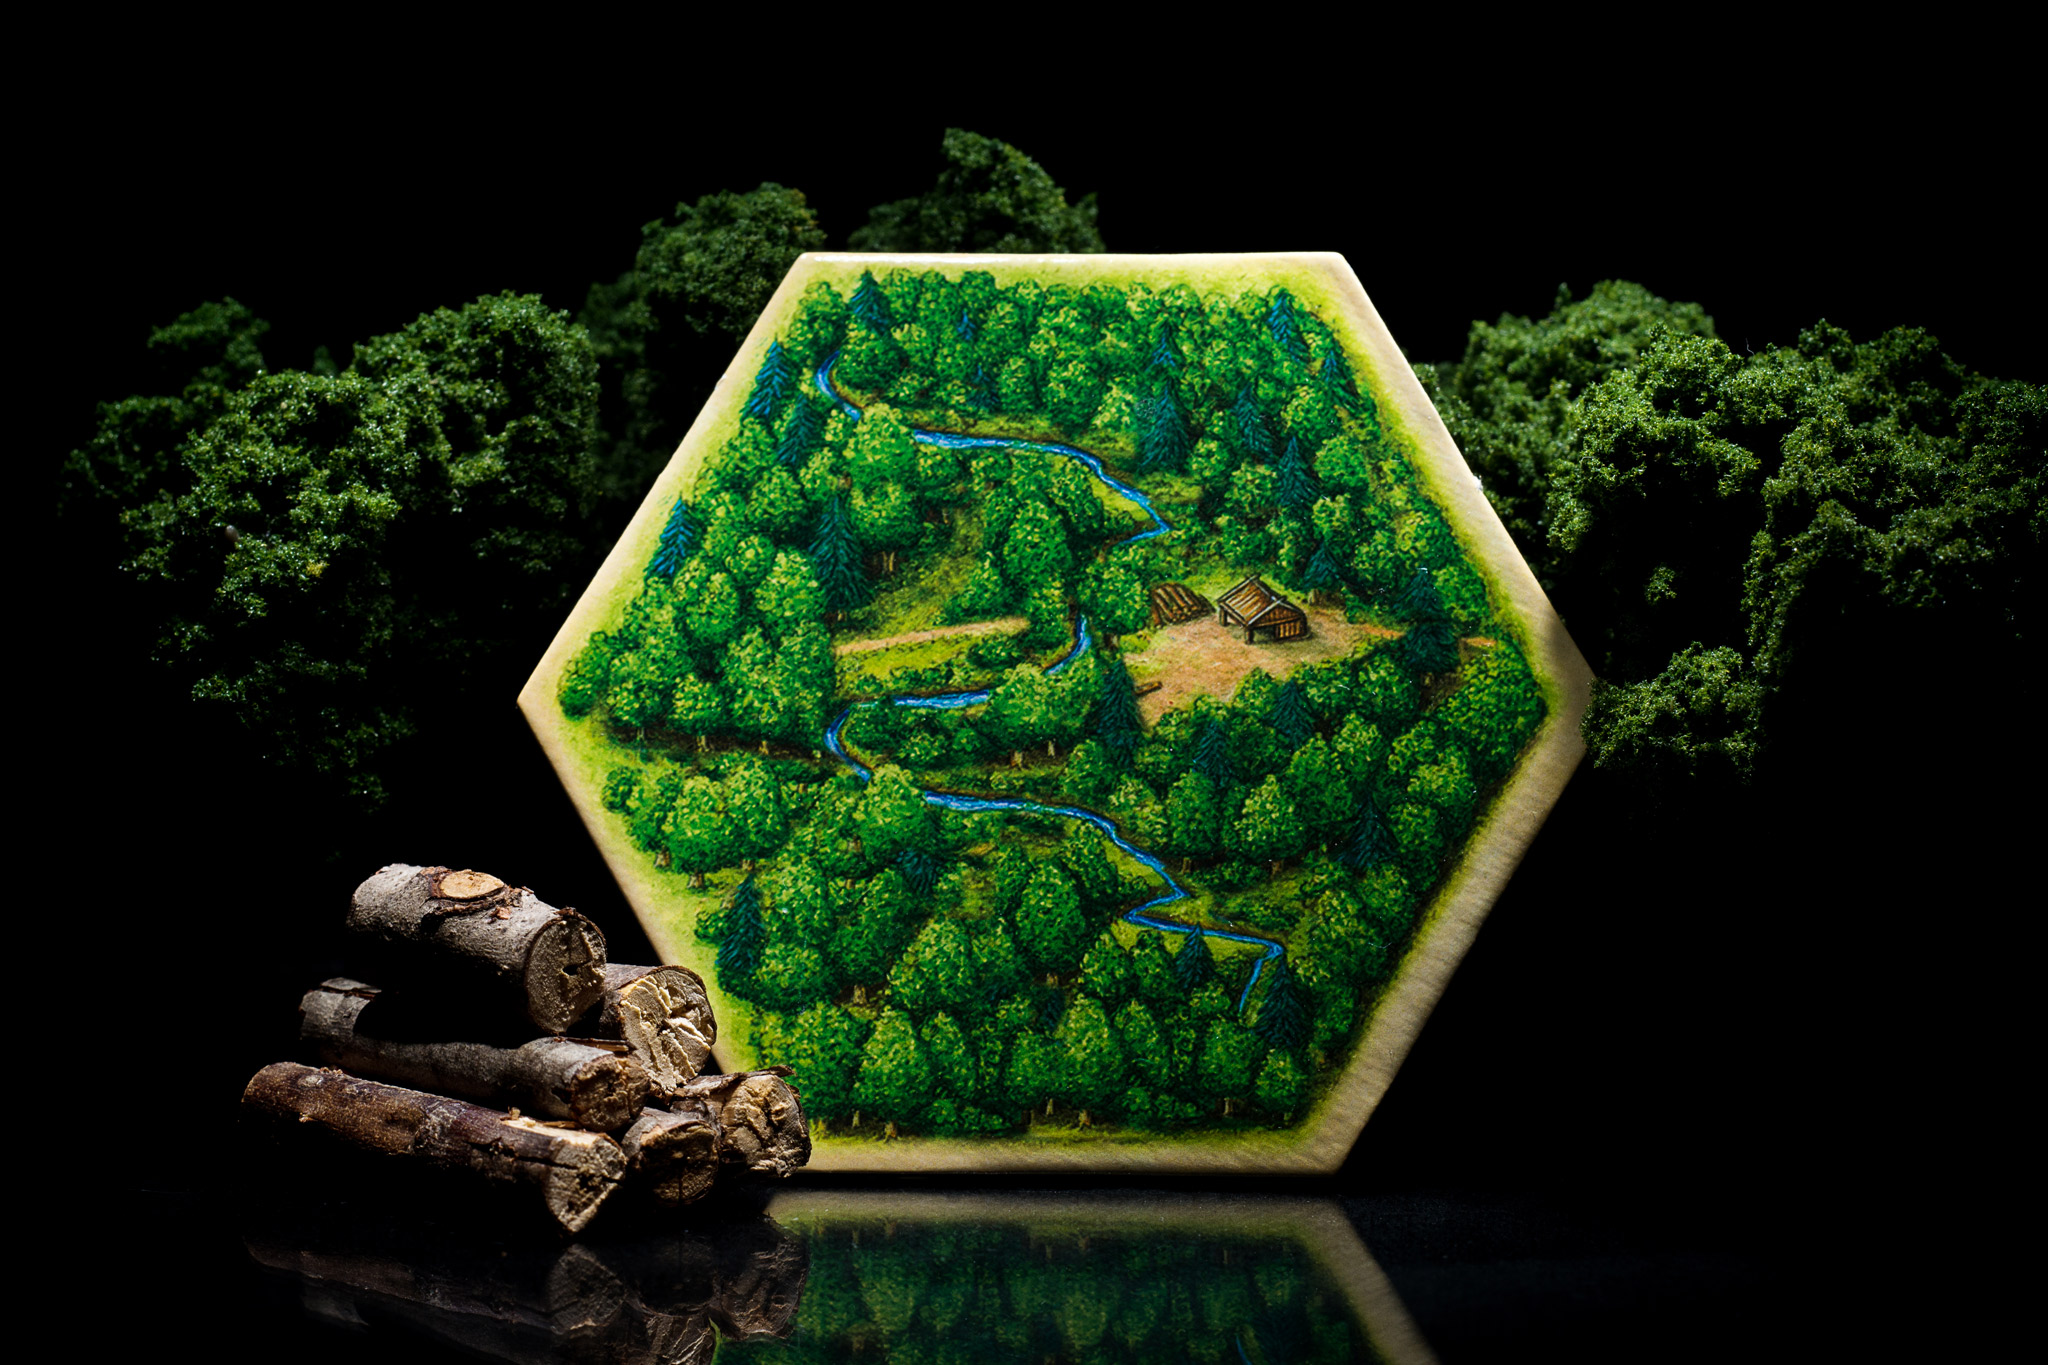 Catan forest hex tile